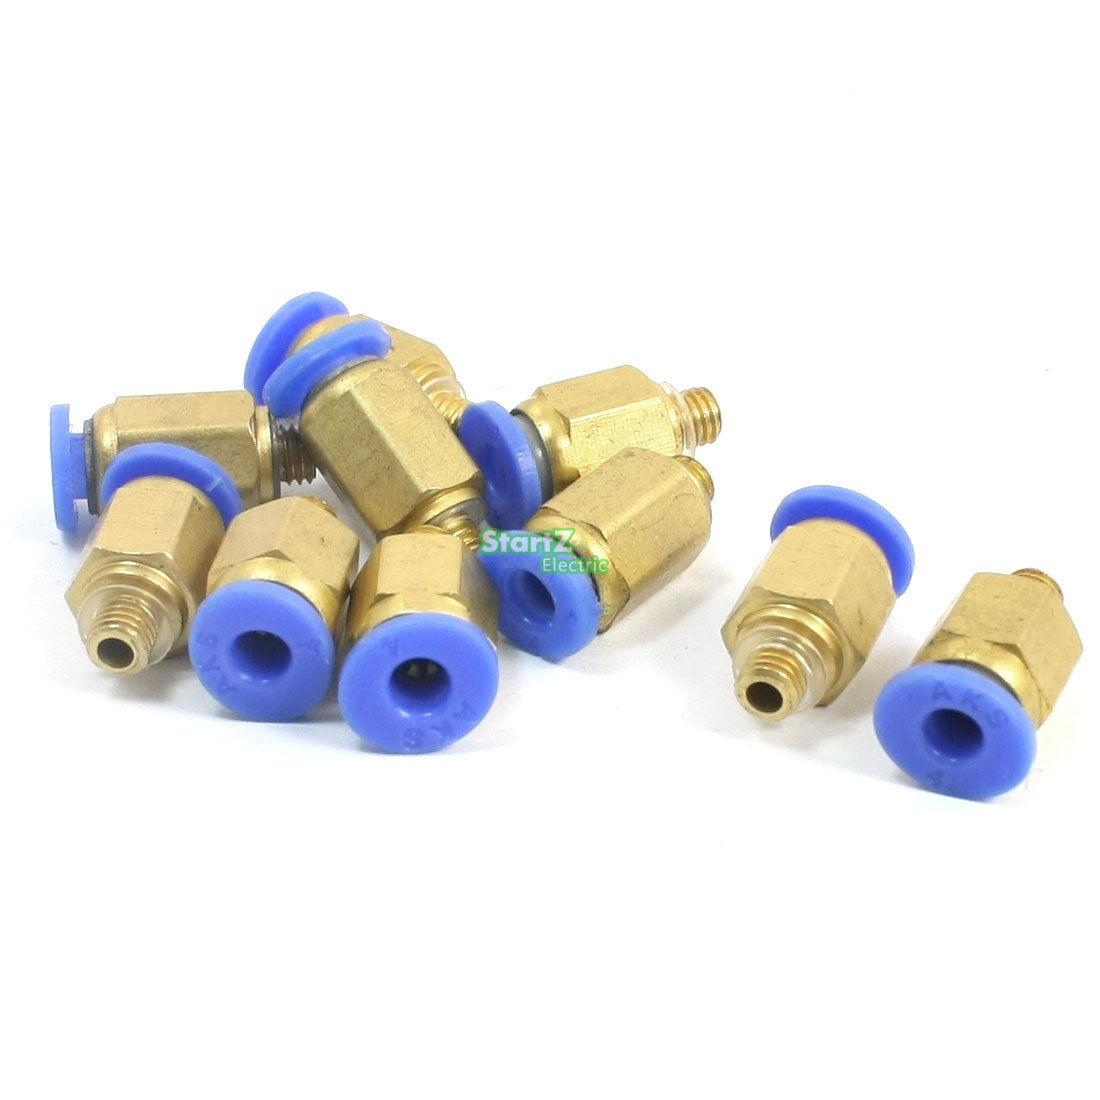 10 x Right Angle Elbow Pneumatic M5 6mmx4mm Air Hose Quick Connectors Coupling